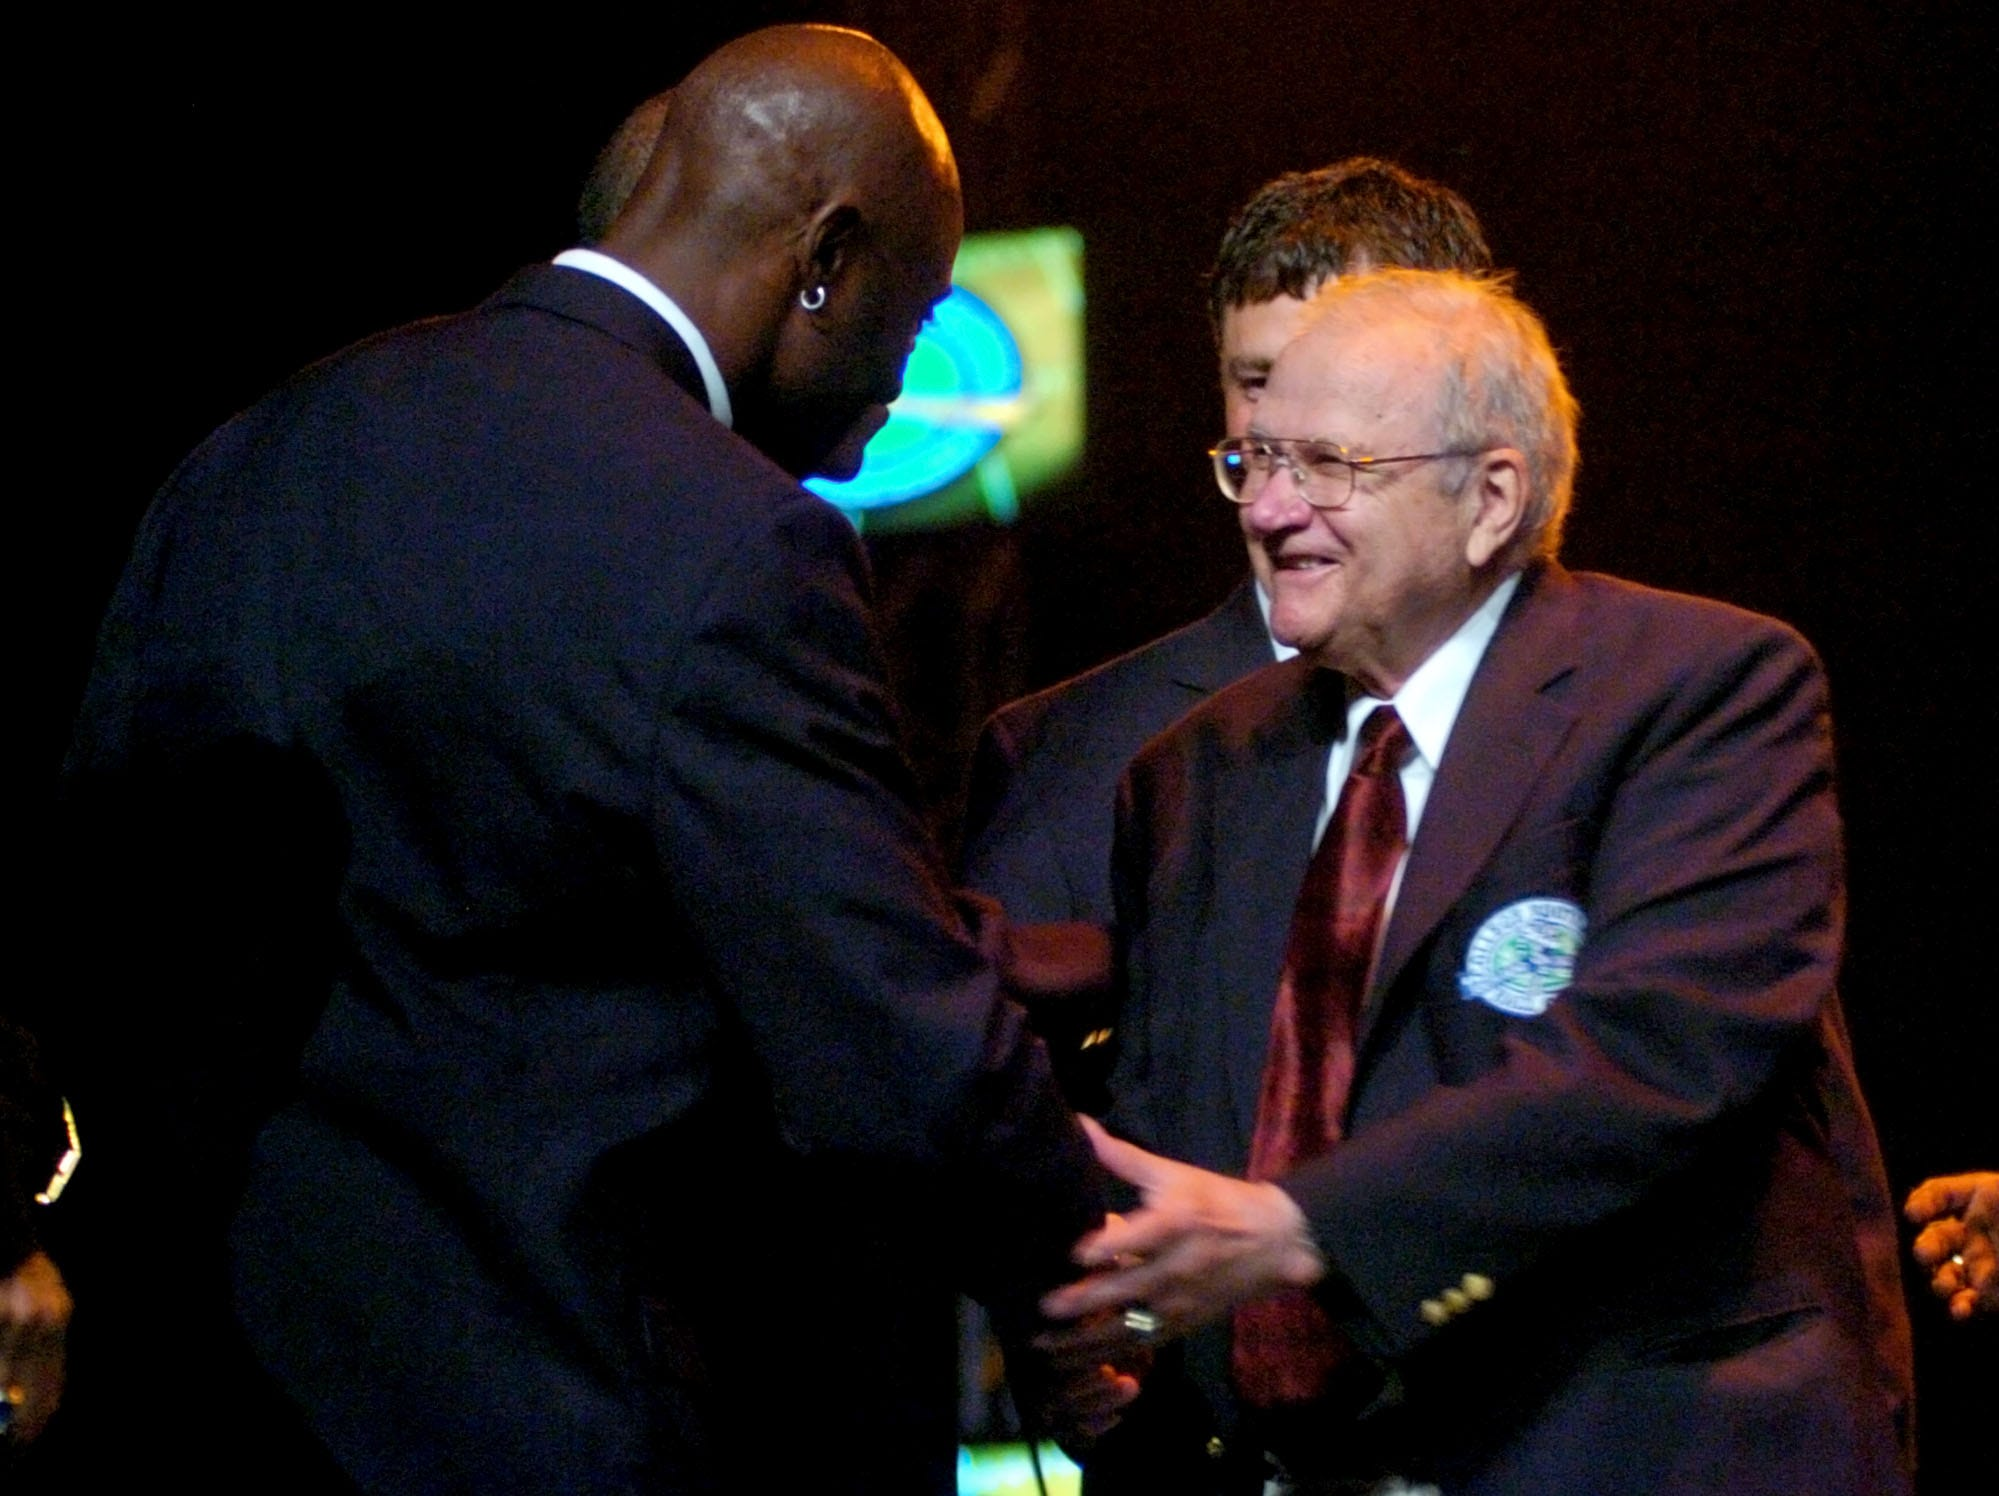 2006: College Football Hall of Fame inductees John Gagliardi and Jerry Rice congratulate each other after their enshrinement ceremony in South Bend, Ind. in August 2006.